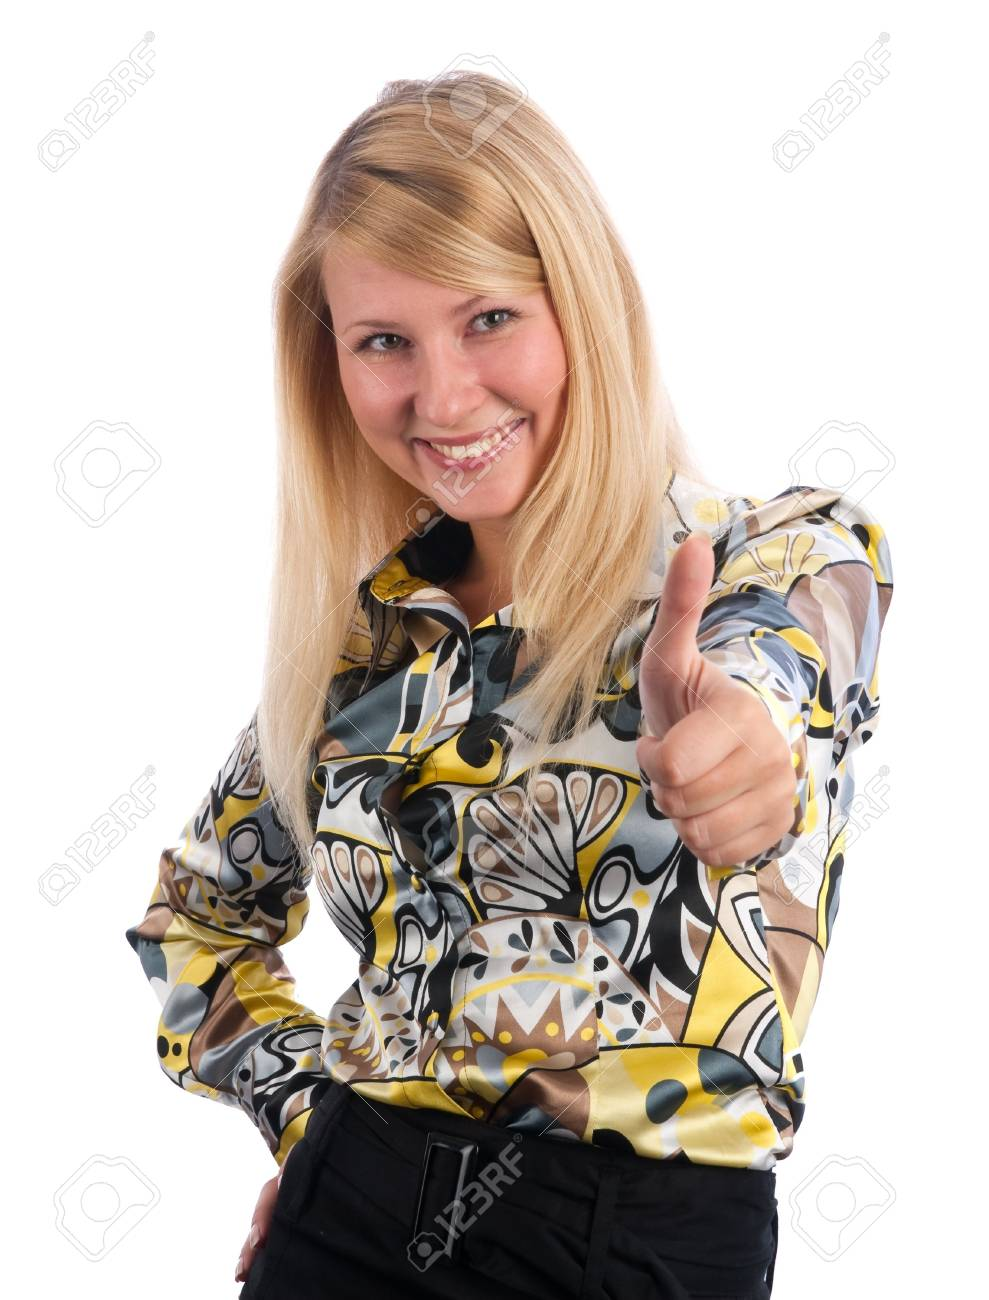 happy young lady showing thumb's up sign against isolated white background Stock Photo - 5762492